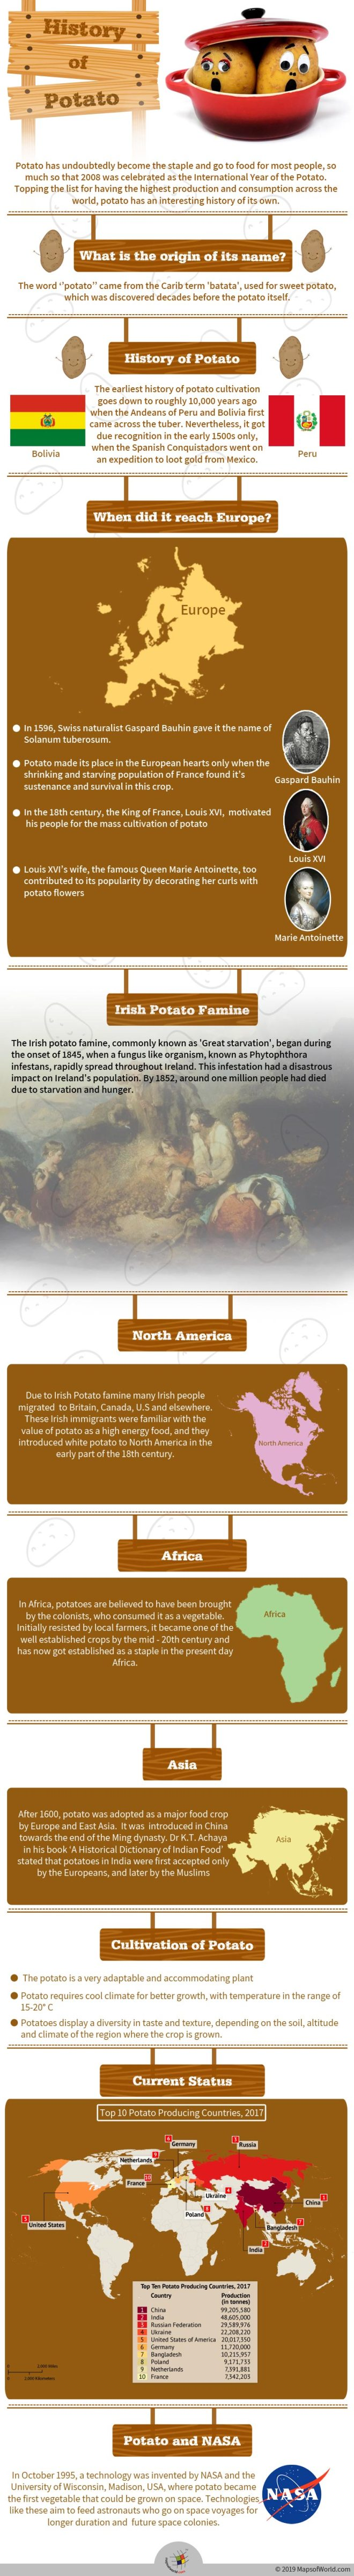 Infographic Showing The History of Potato